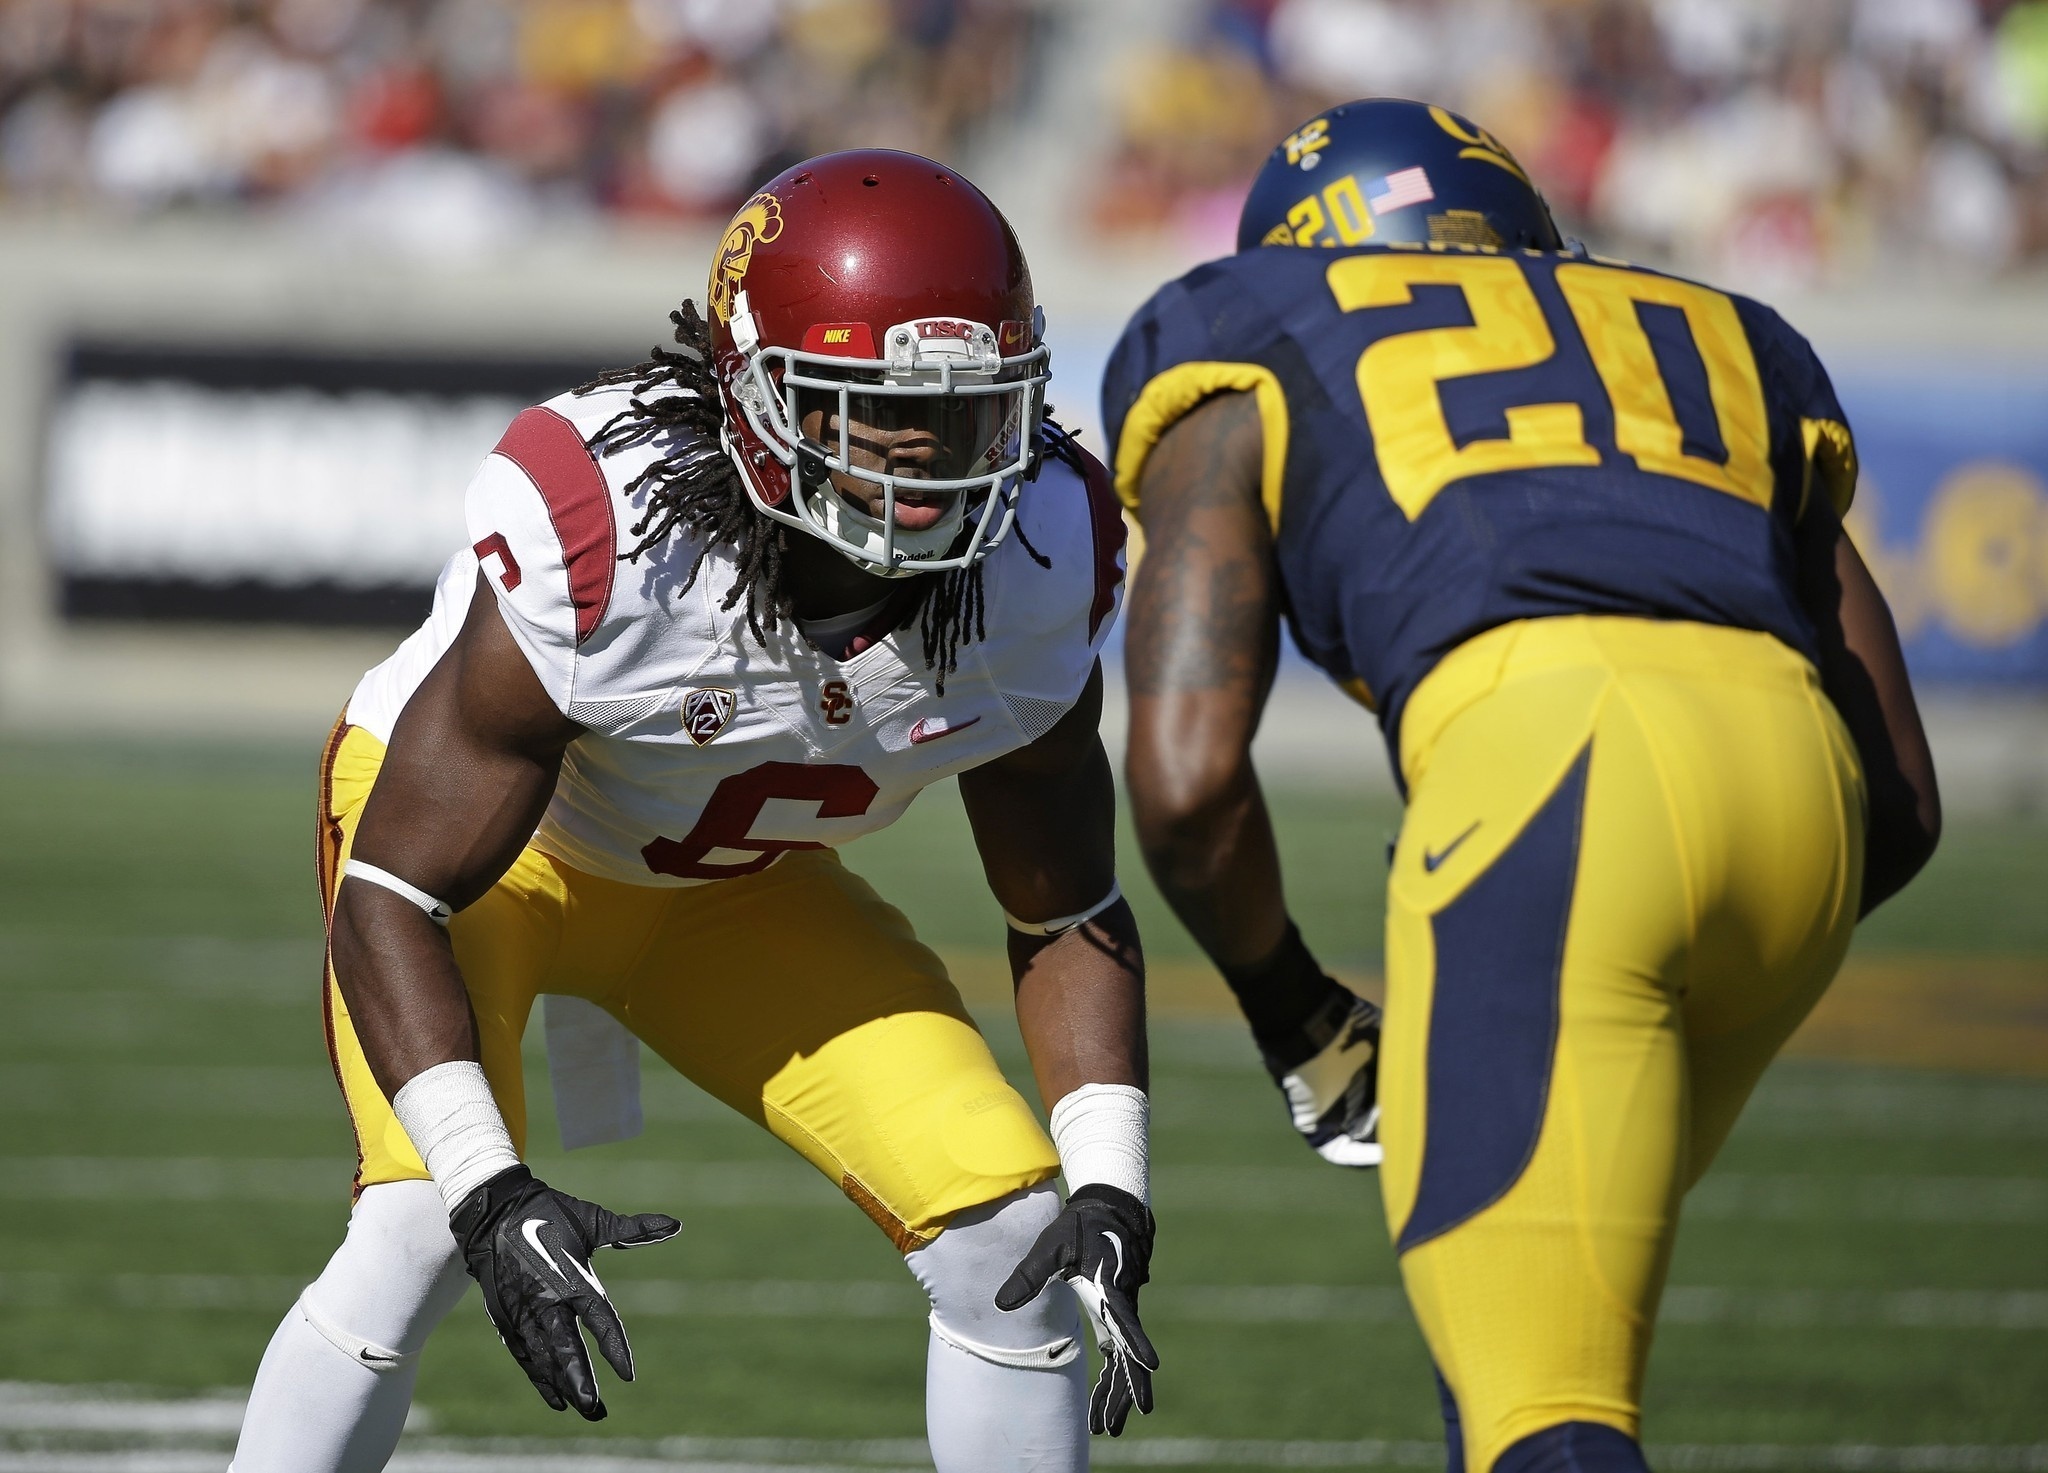 USC football's fresh start quickly meets with controversy, distraction